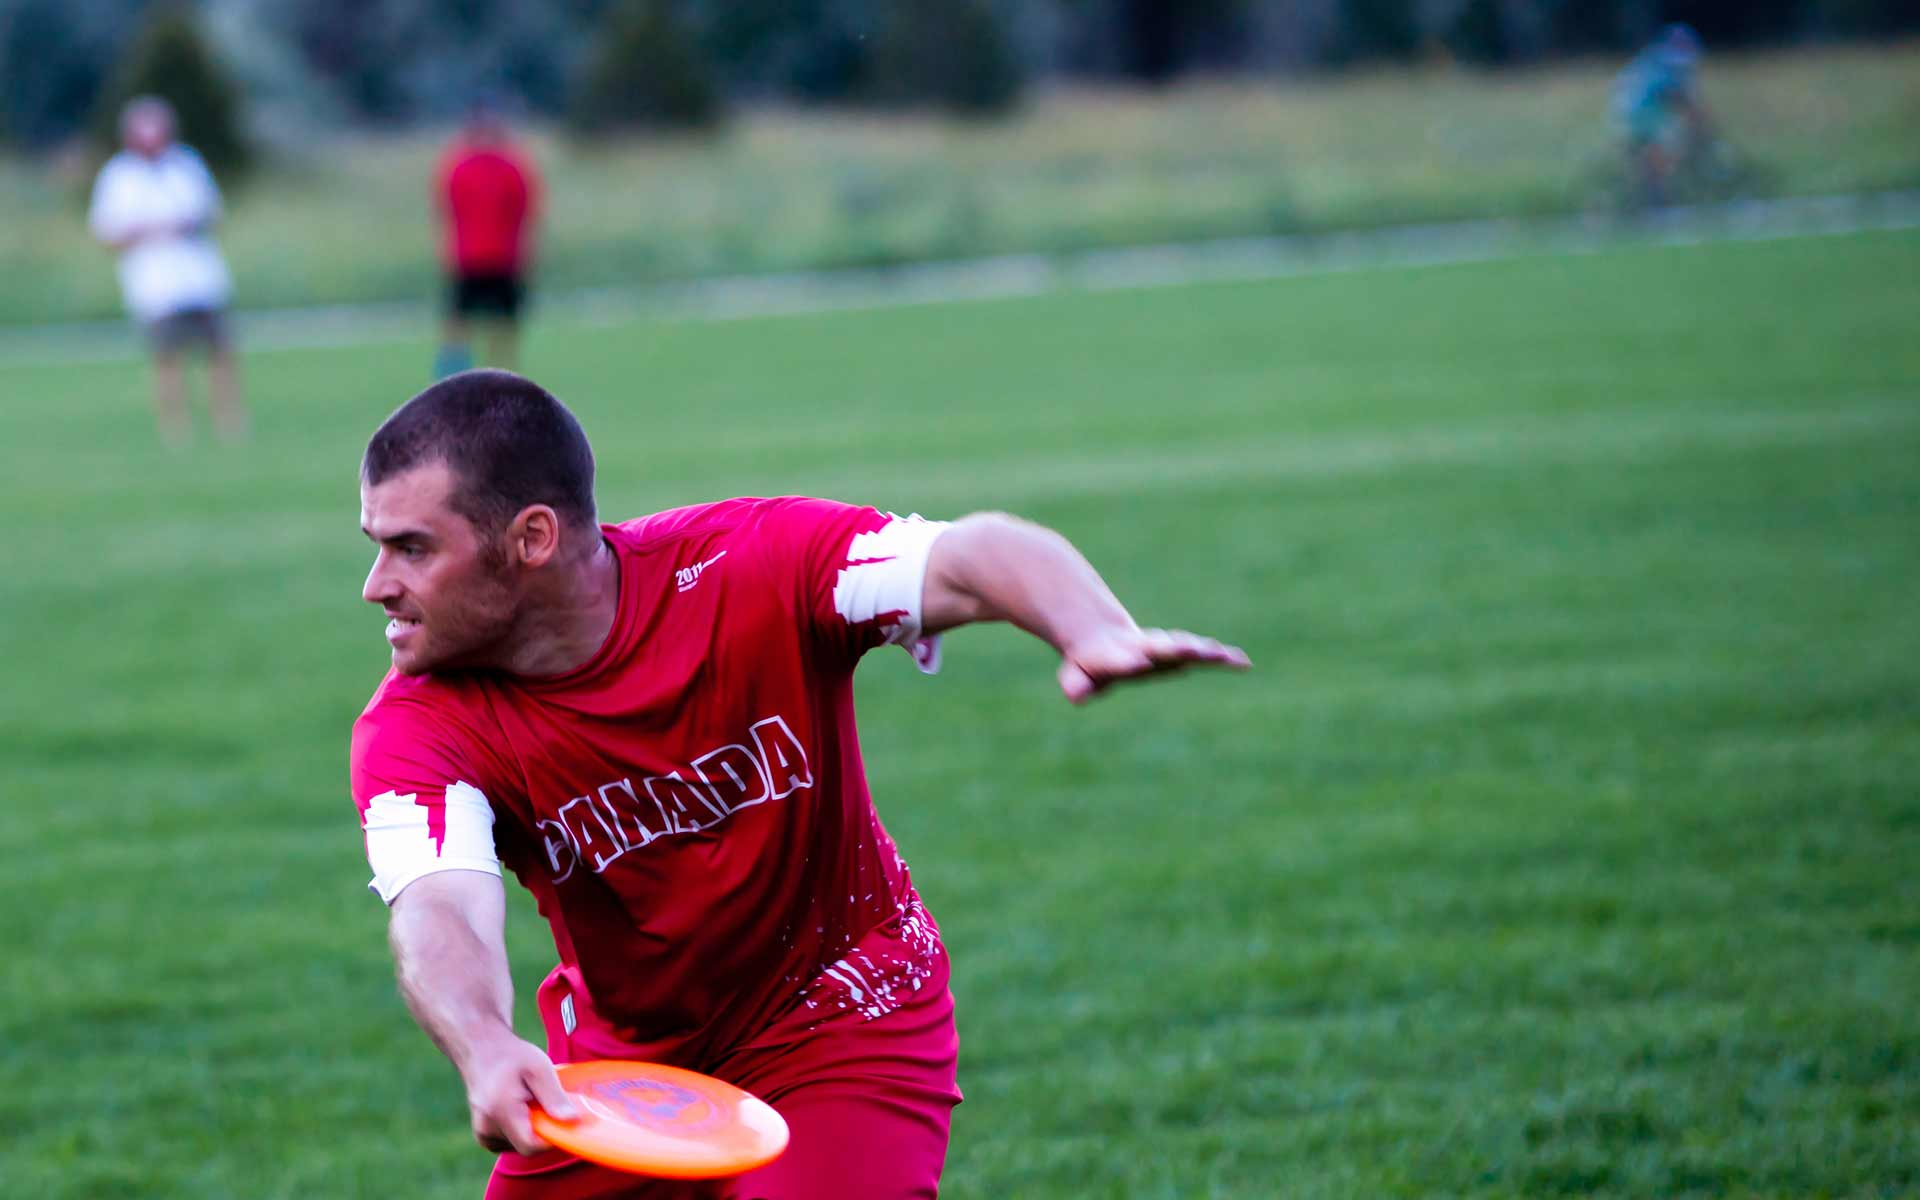 Guinness Record Holder 'Frisbee Rob' to Visit Fort McMurray Schools